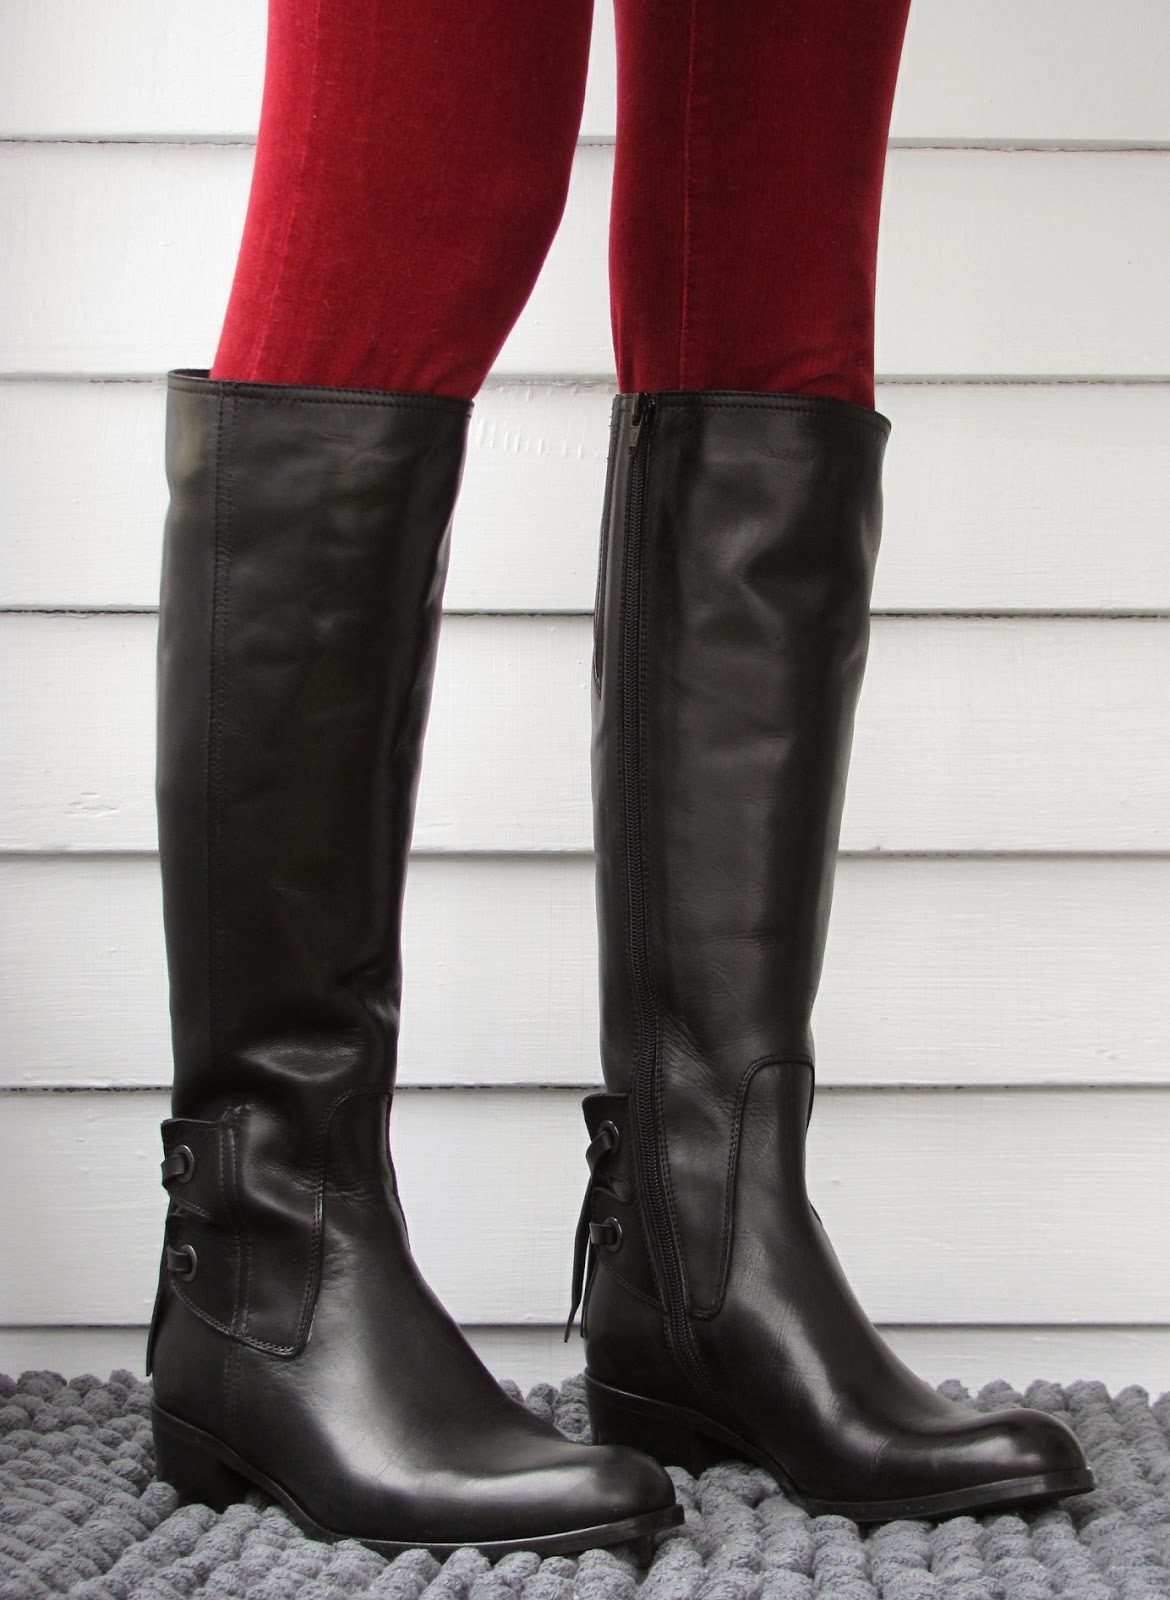 Howdy Slim! Riding Boots for Thin Calves: Which matters more for ...